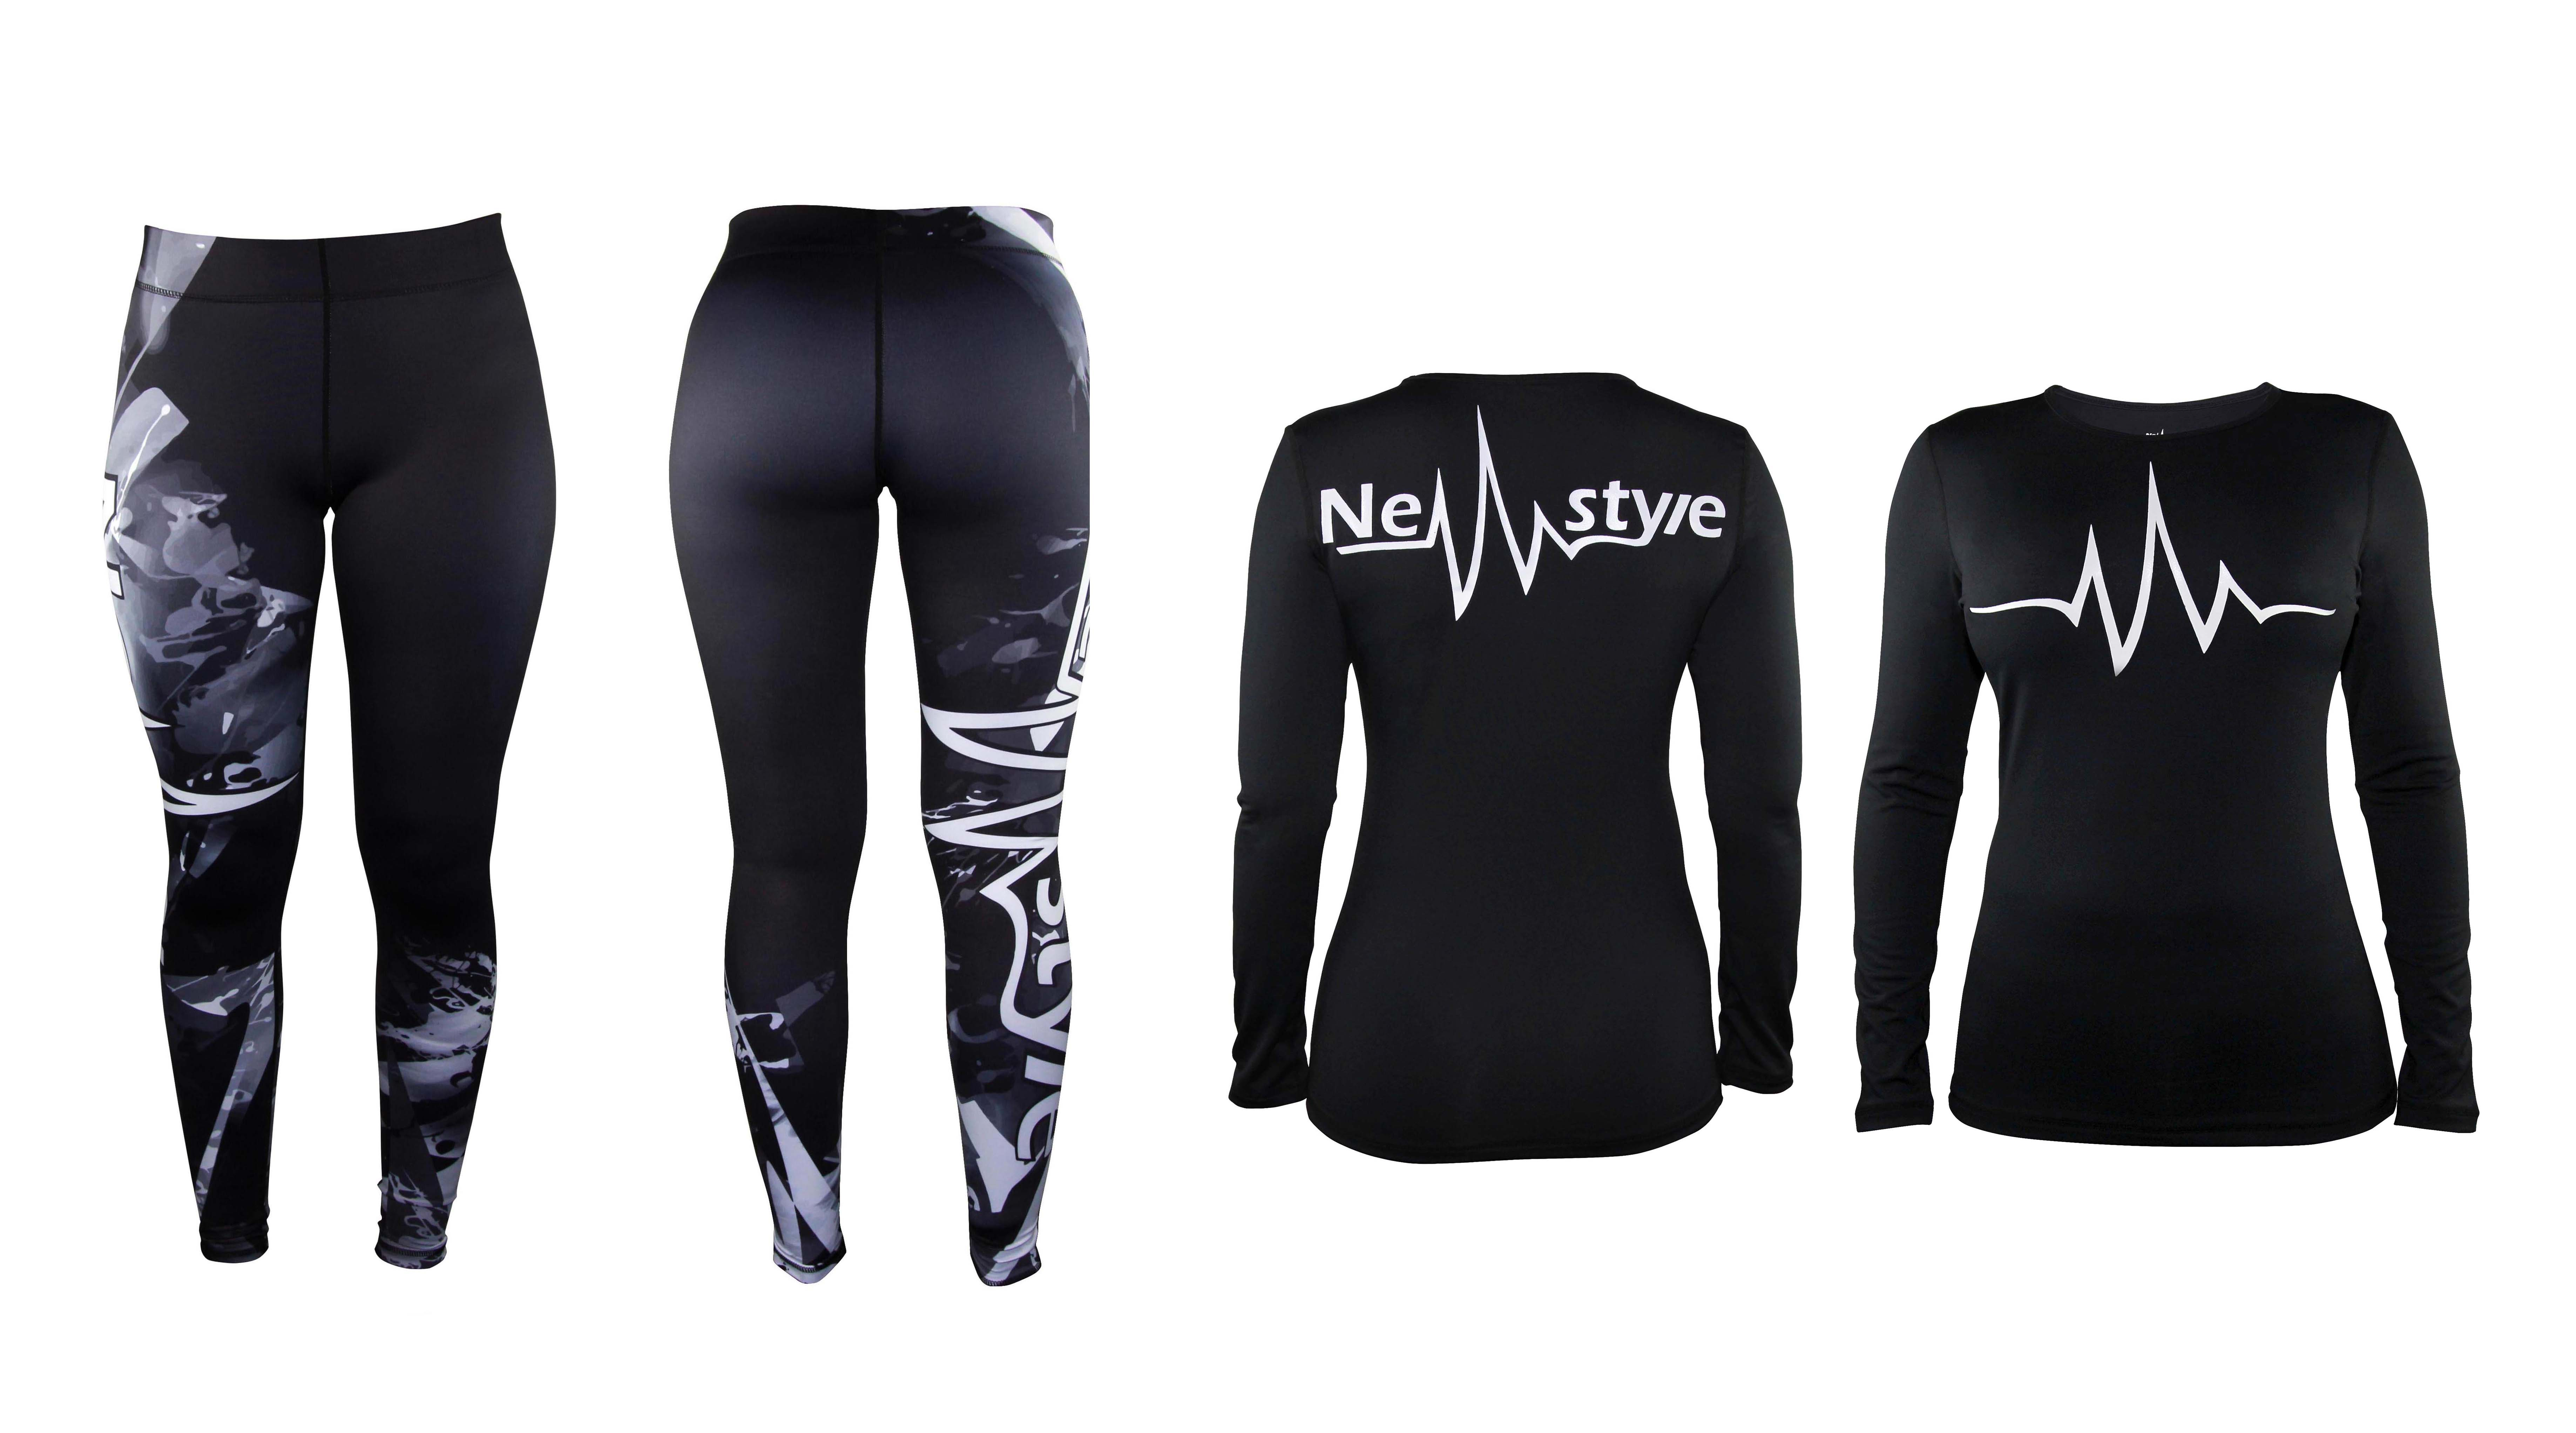 Commercial picture newstyle sportswear workout clothes